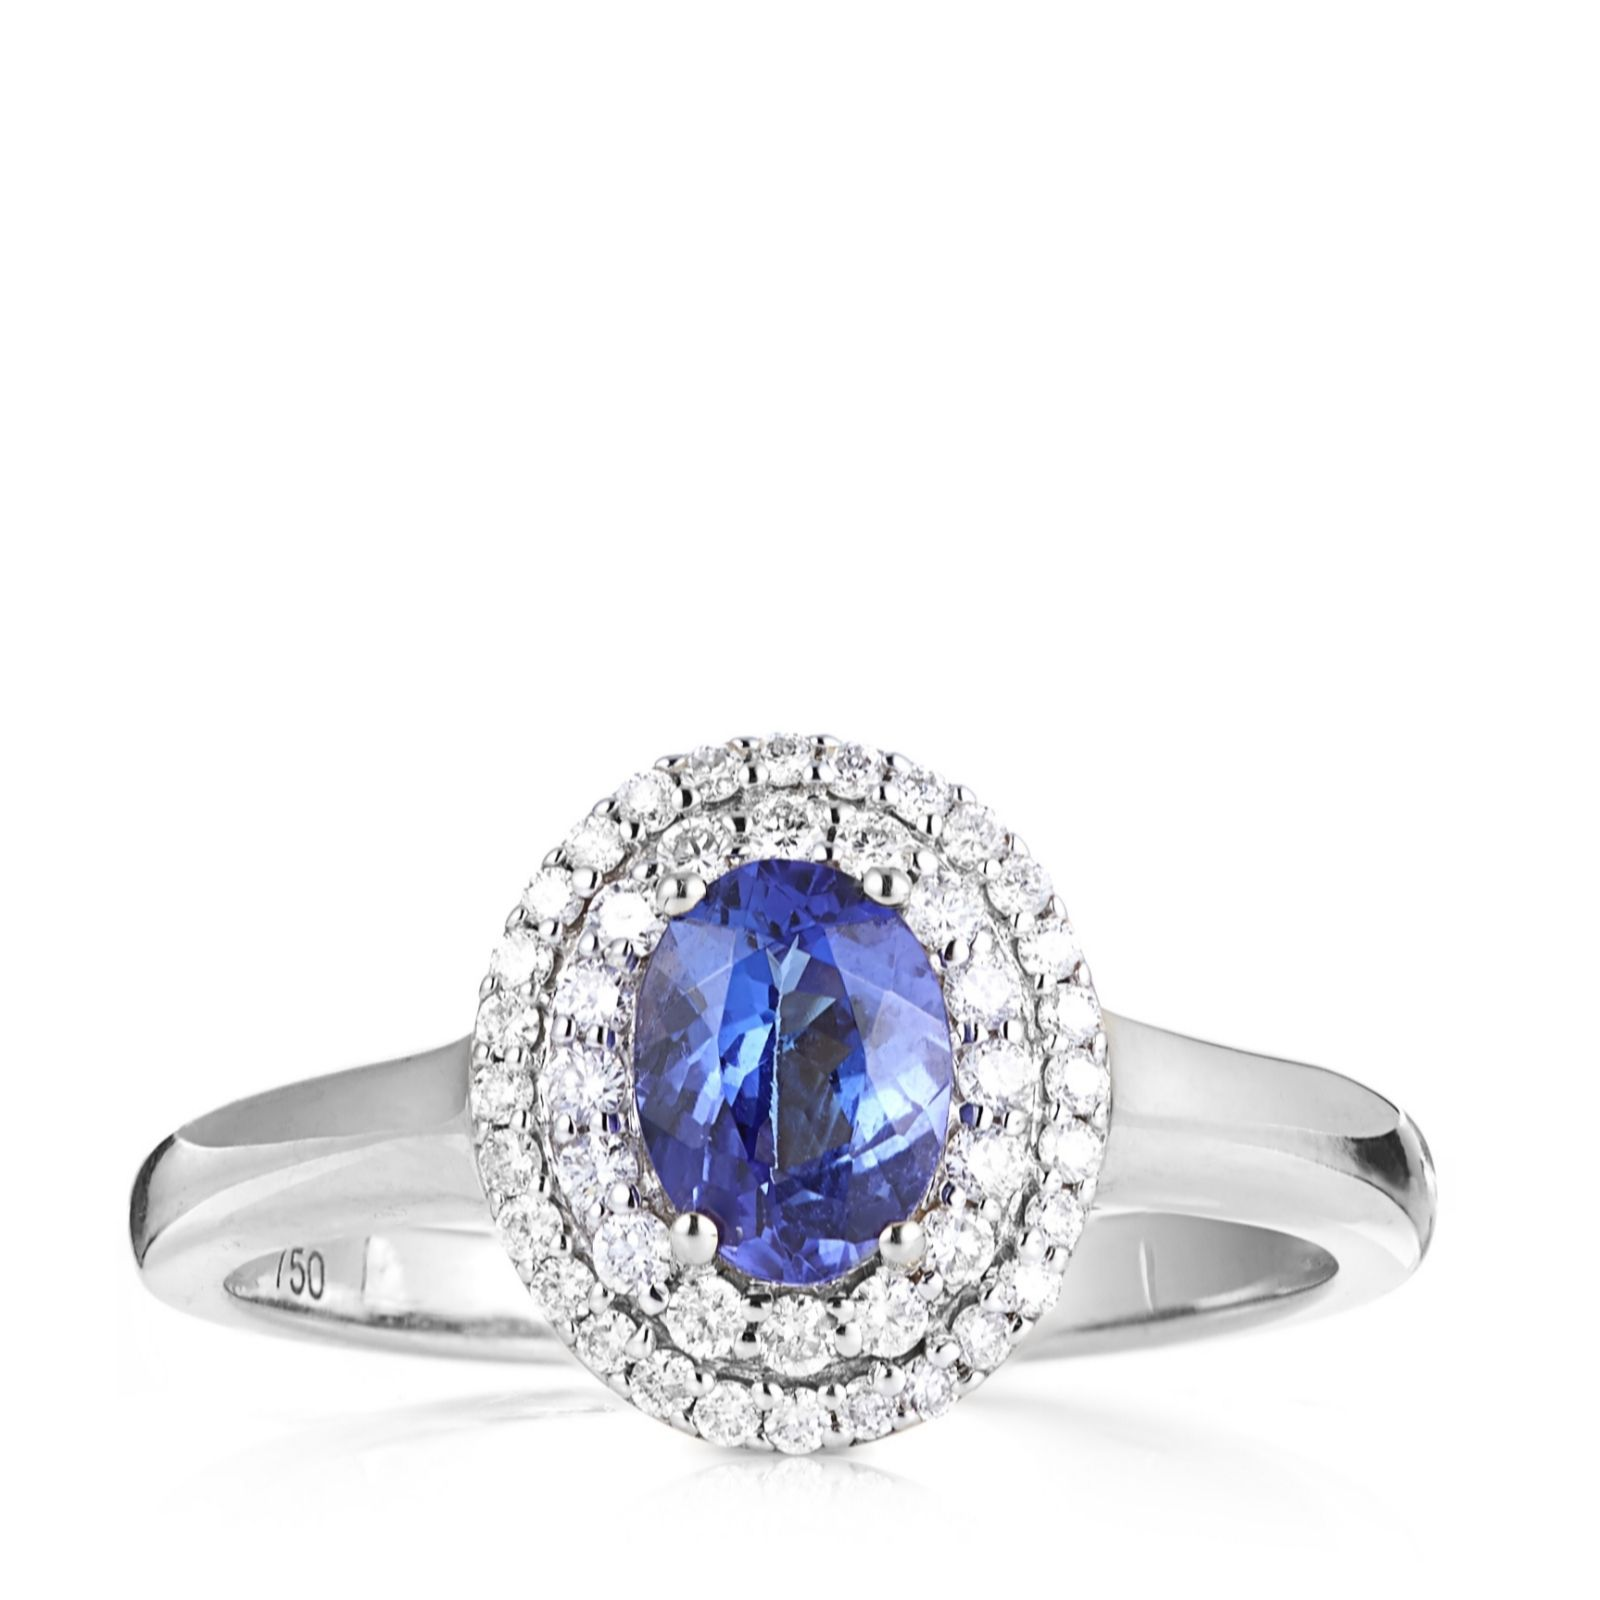 modern l fashion j engagement diamond round platinum tanzanite at img jewelry id rings ring sale for